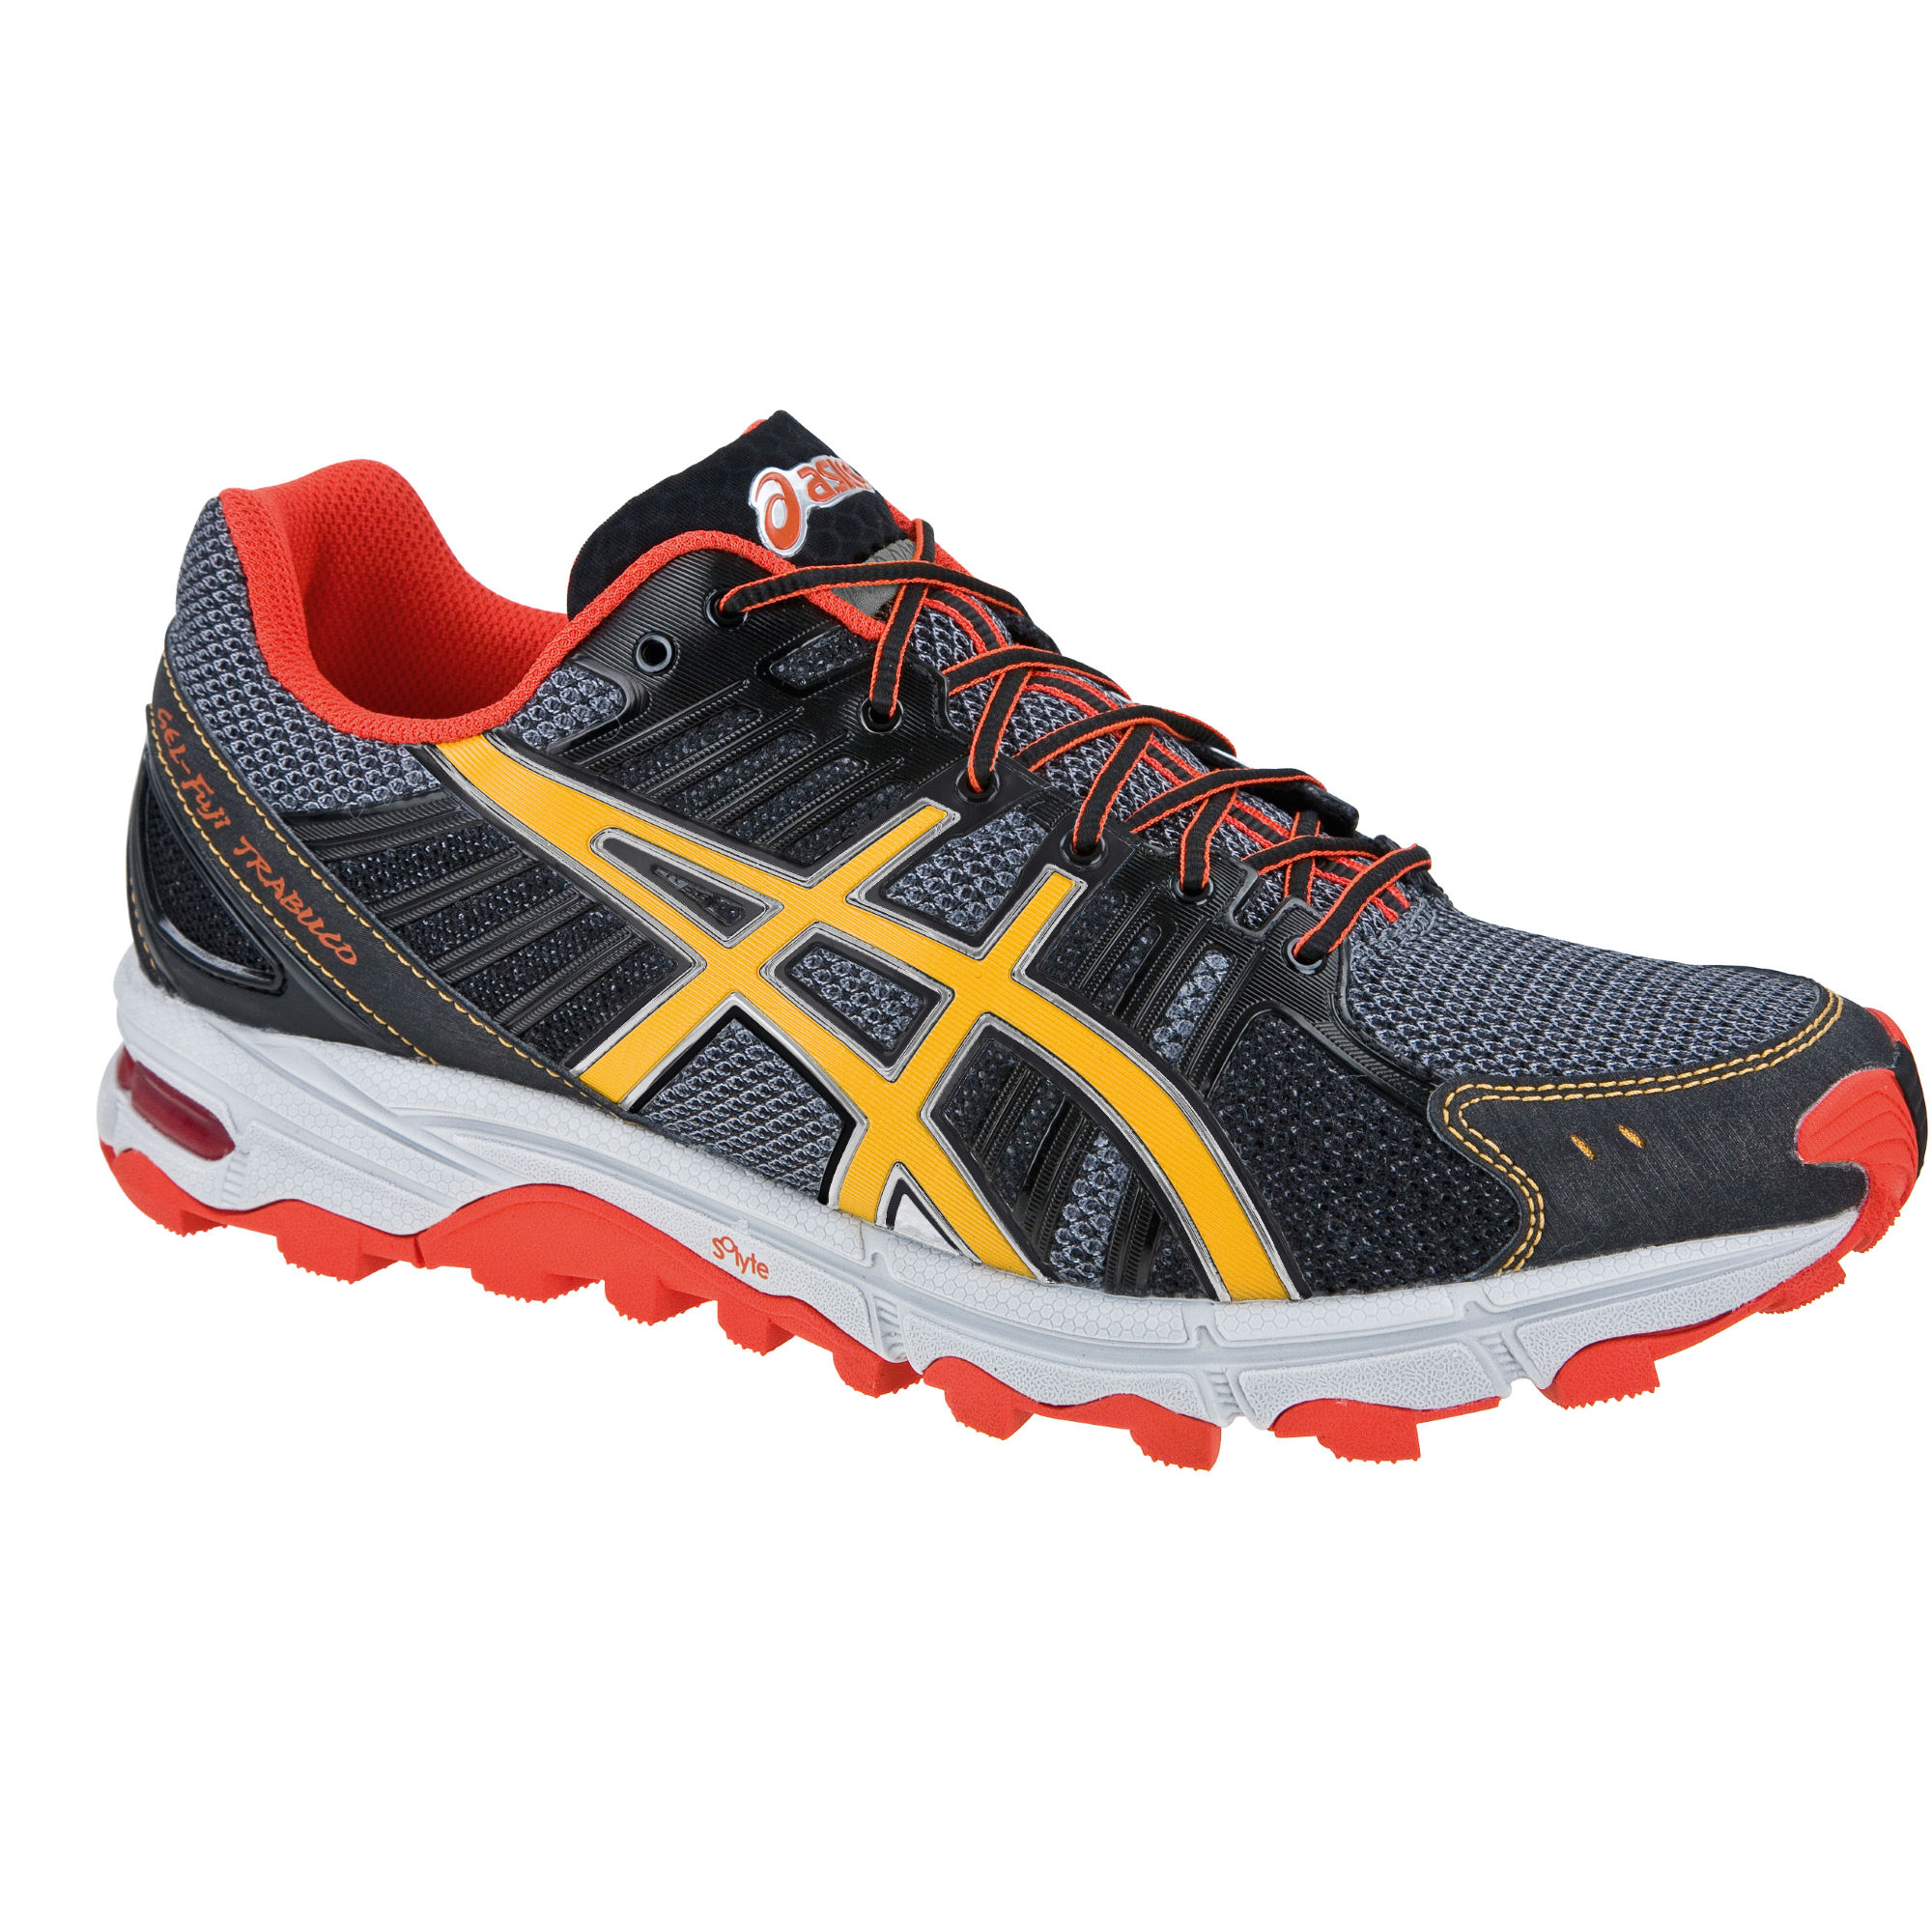 wiggle asics gel fuji trabuco shoes aw12 offroad running shoes. Black Bedroom Furniture Sets. Home Design Ideas